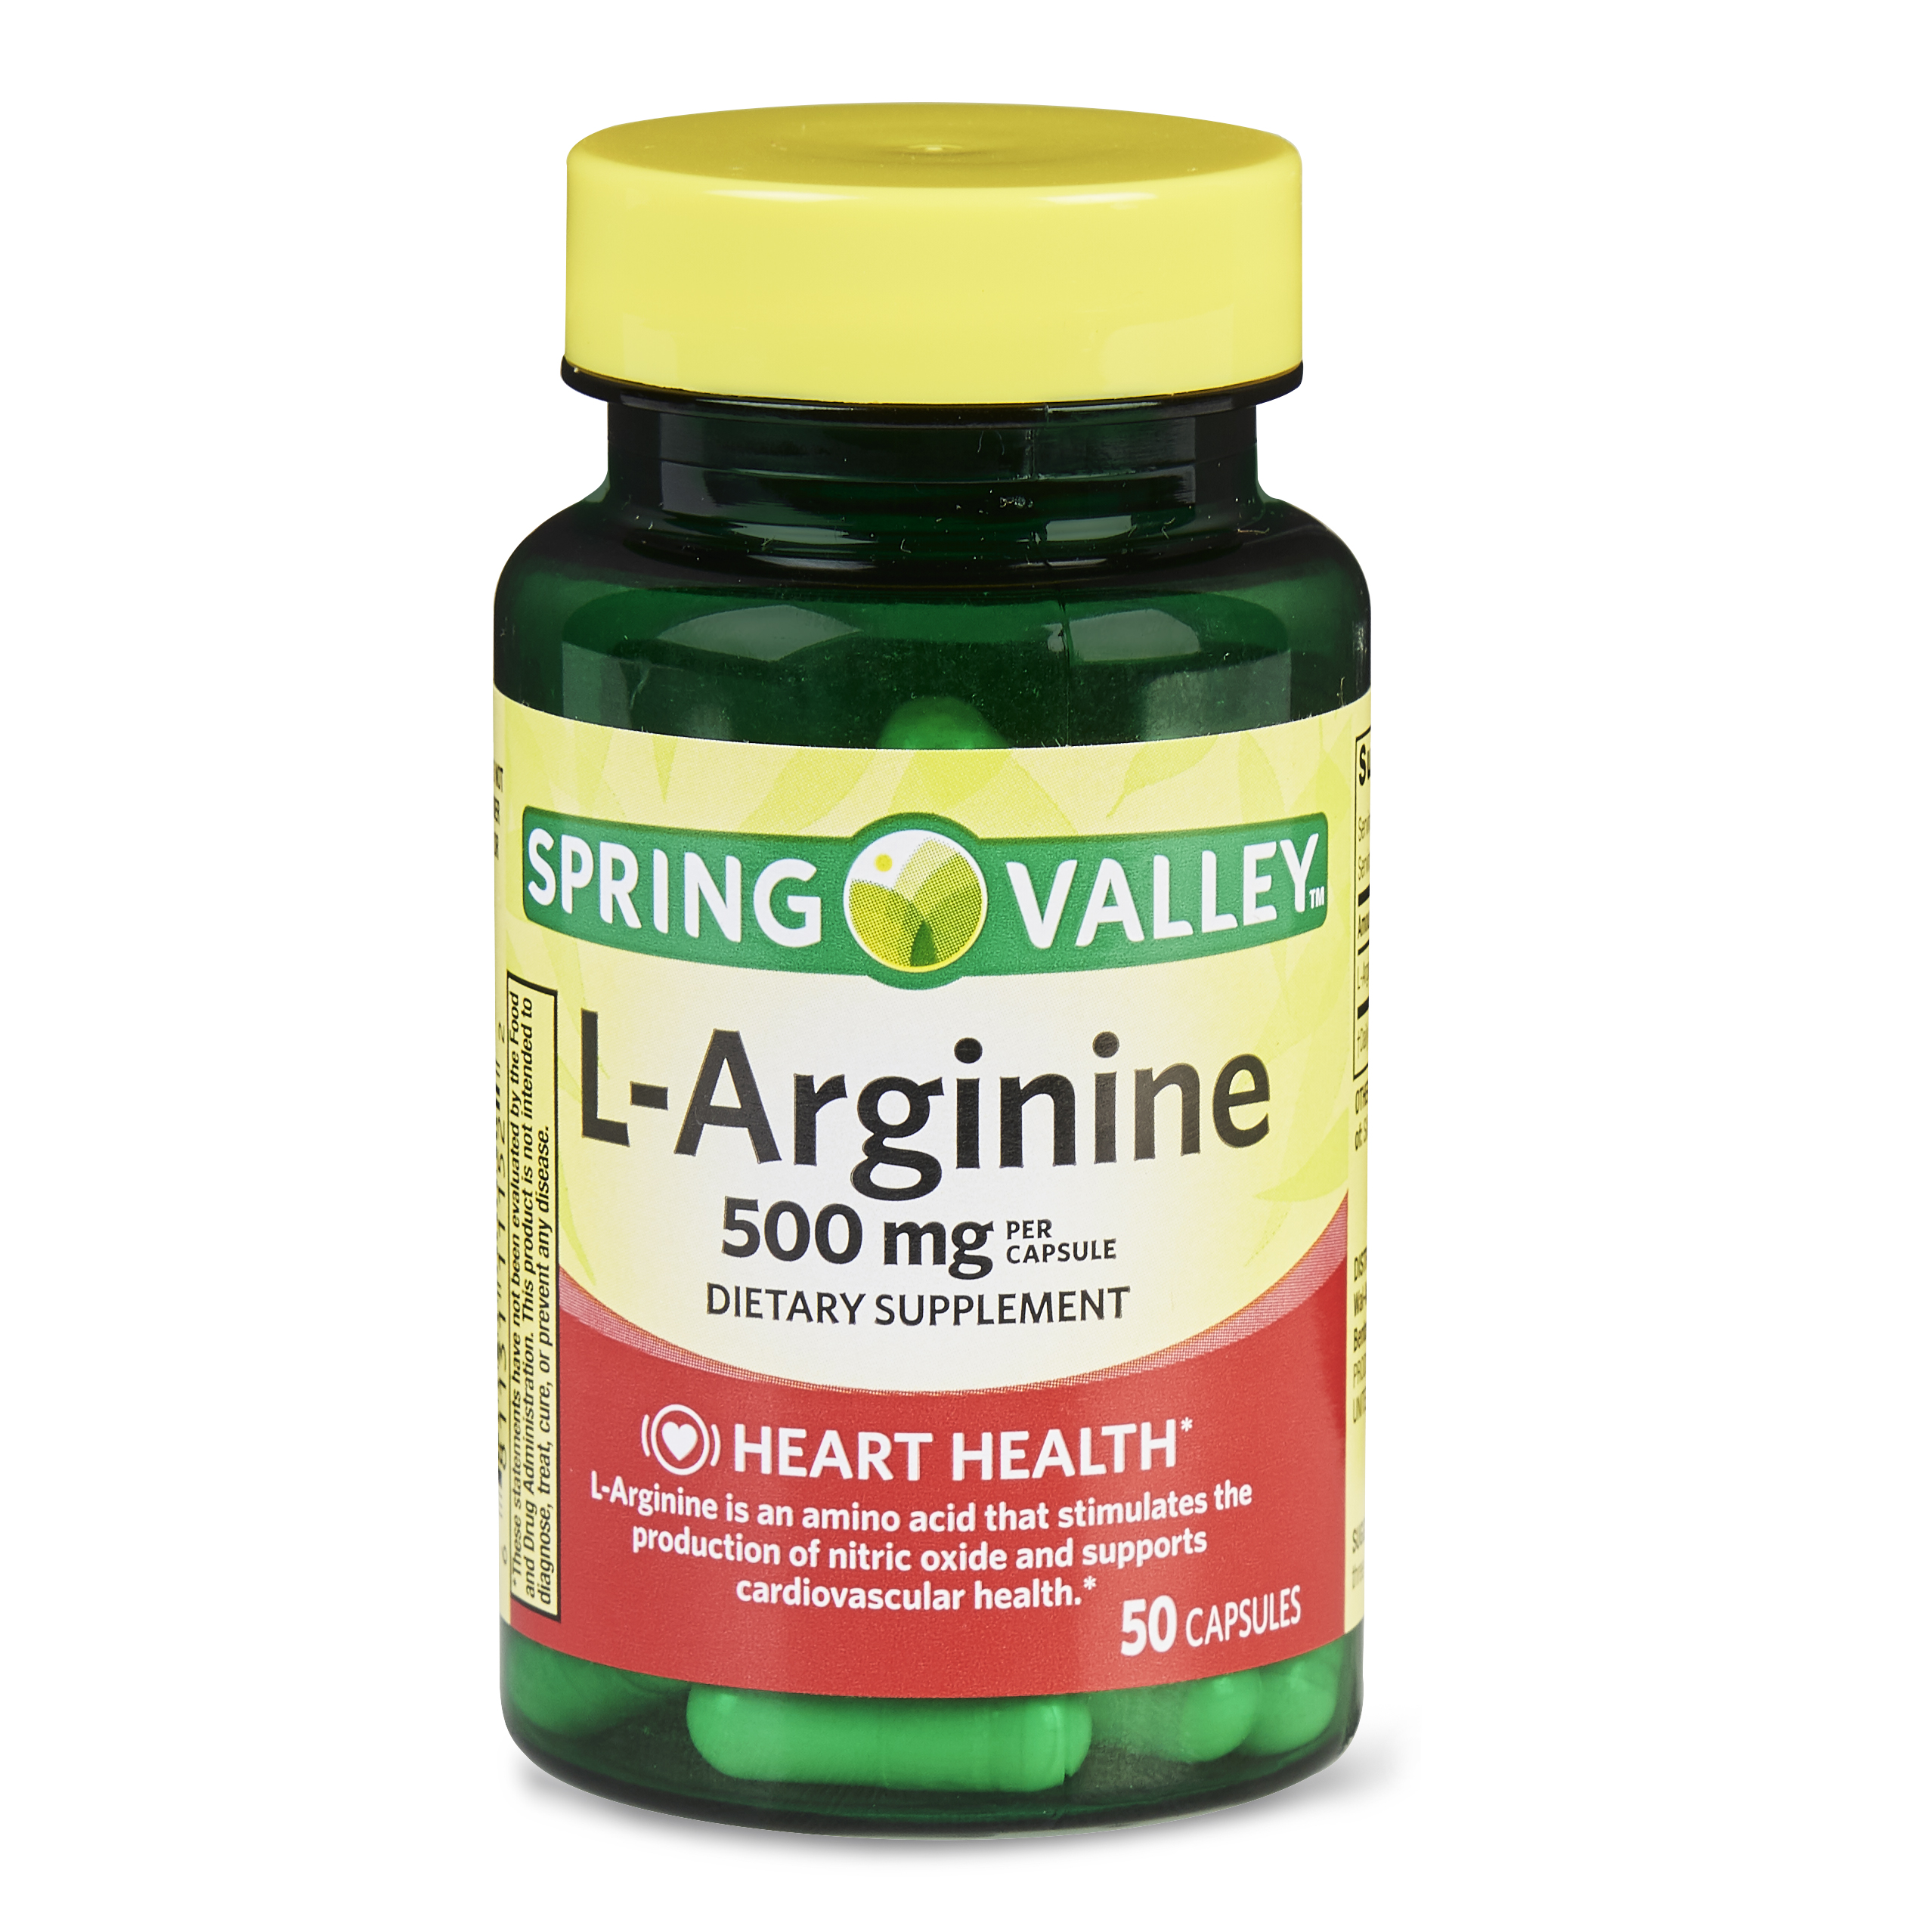 Spring Valley L-Arginine Capsules, 500 mg, 50 Ct